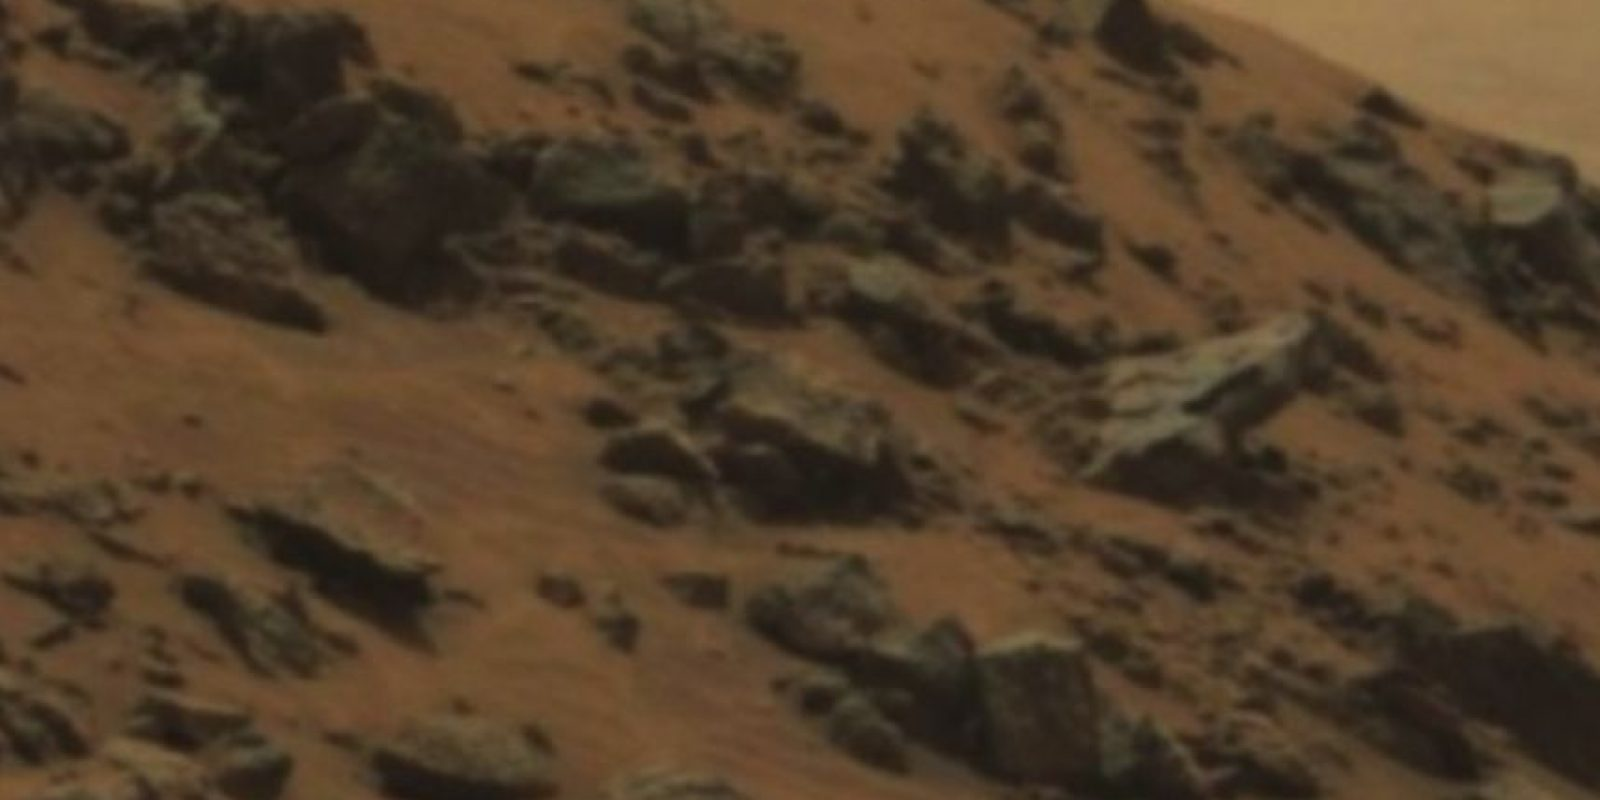 Fue descubierta en junio de 2015 Foto: original en http://mars.nasa.gov/msl/multimedia/raw/?rawid=0978MR0043250040502821E01_DXXX&s=978